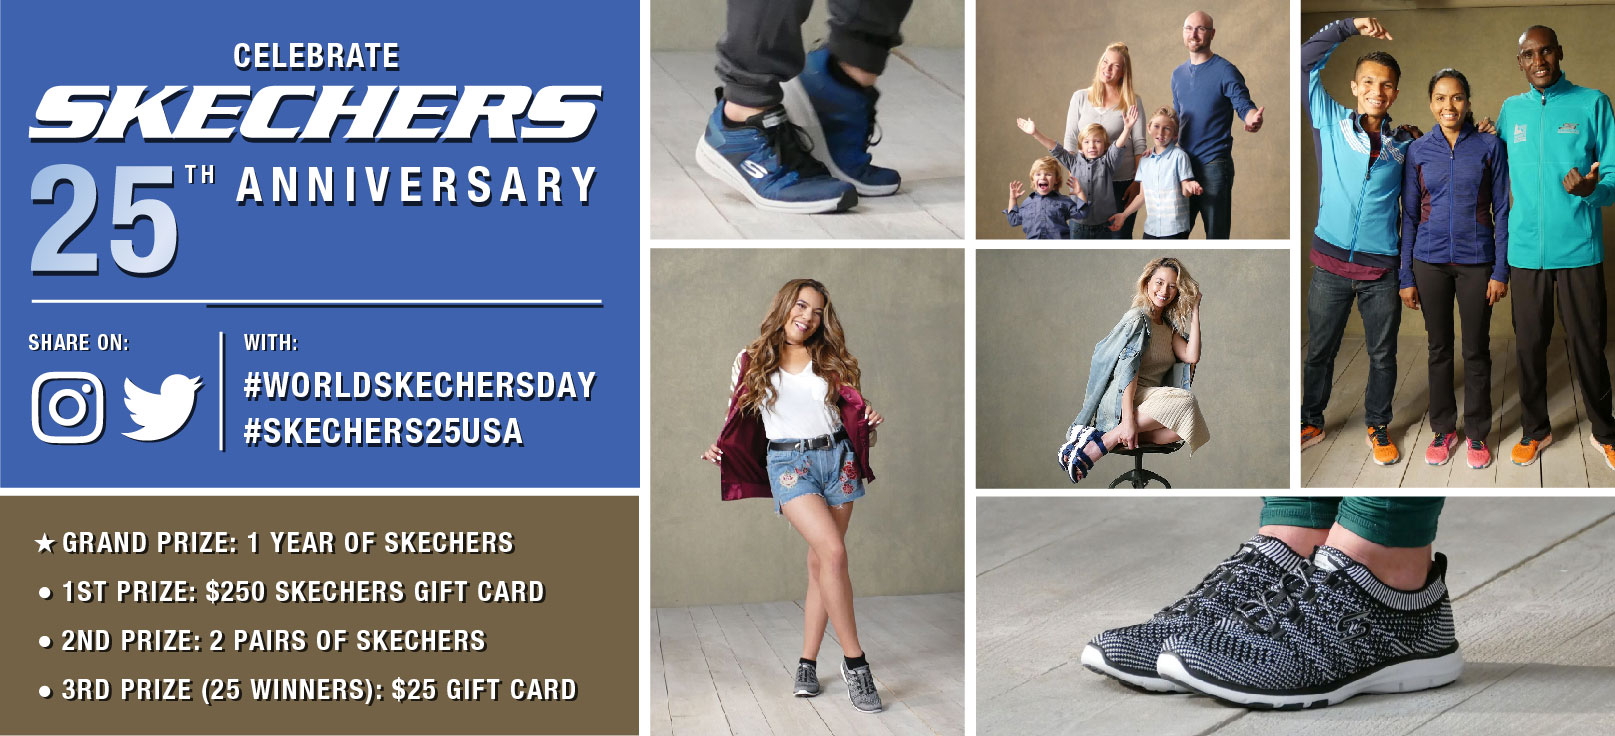 Celebrate Skechers 25th Anniversary and show off your style!